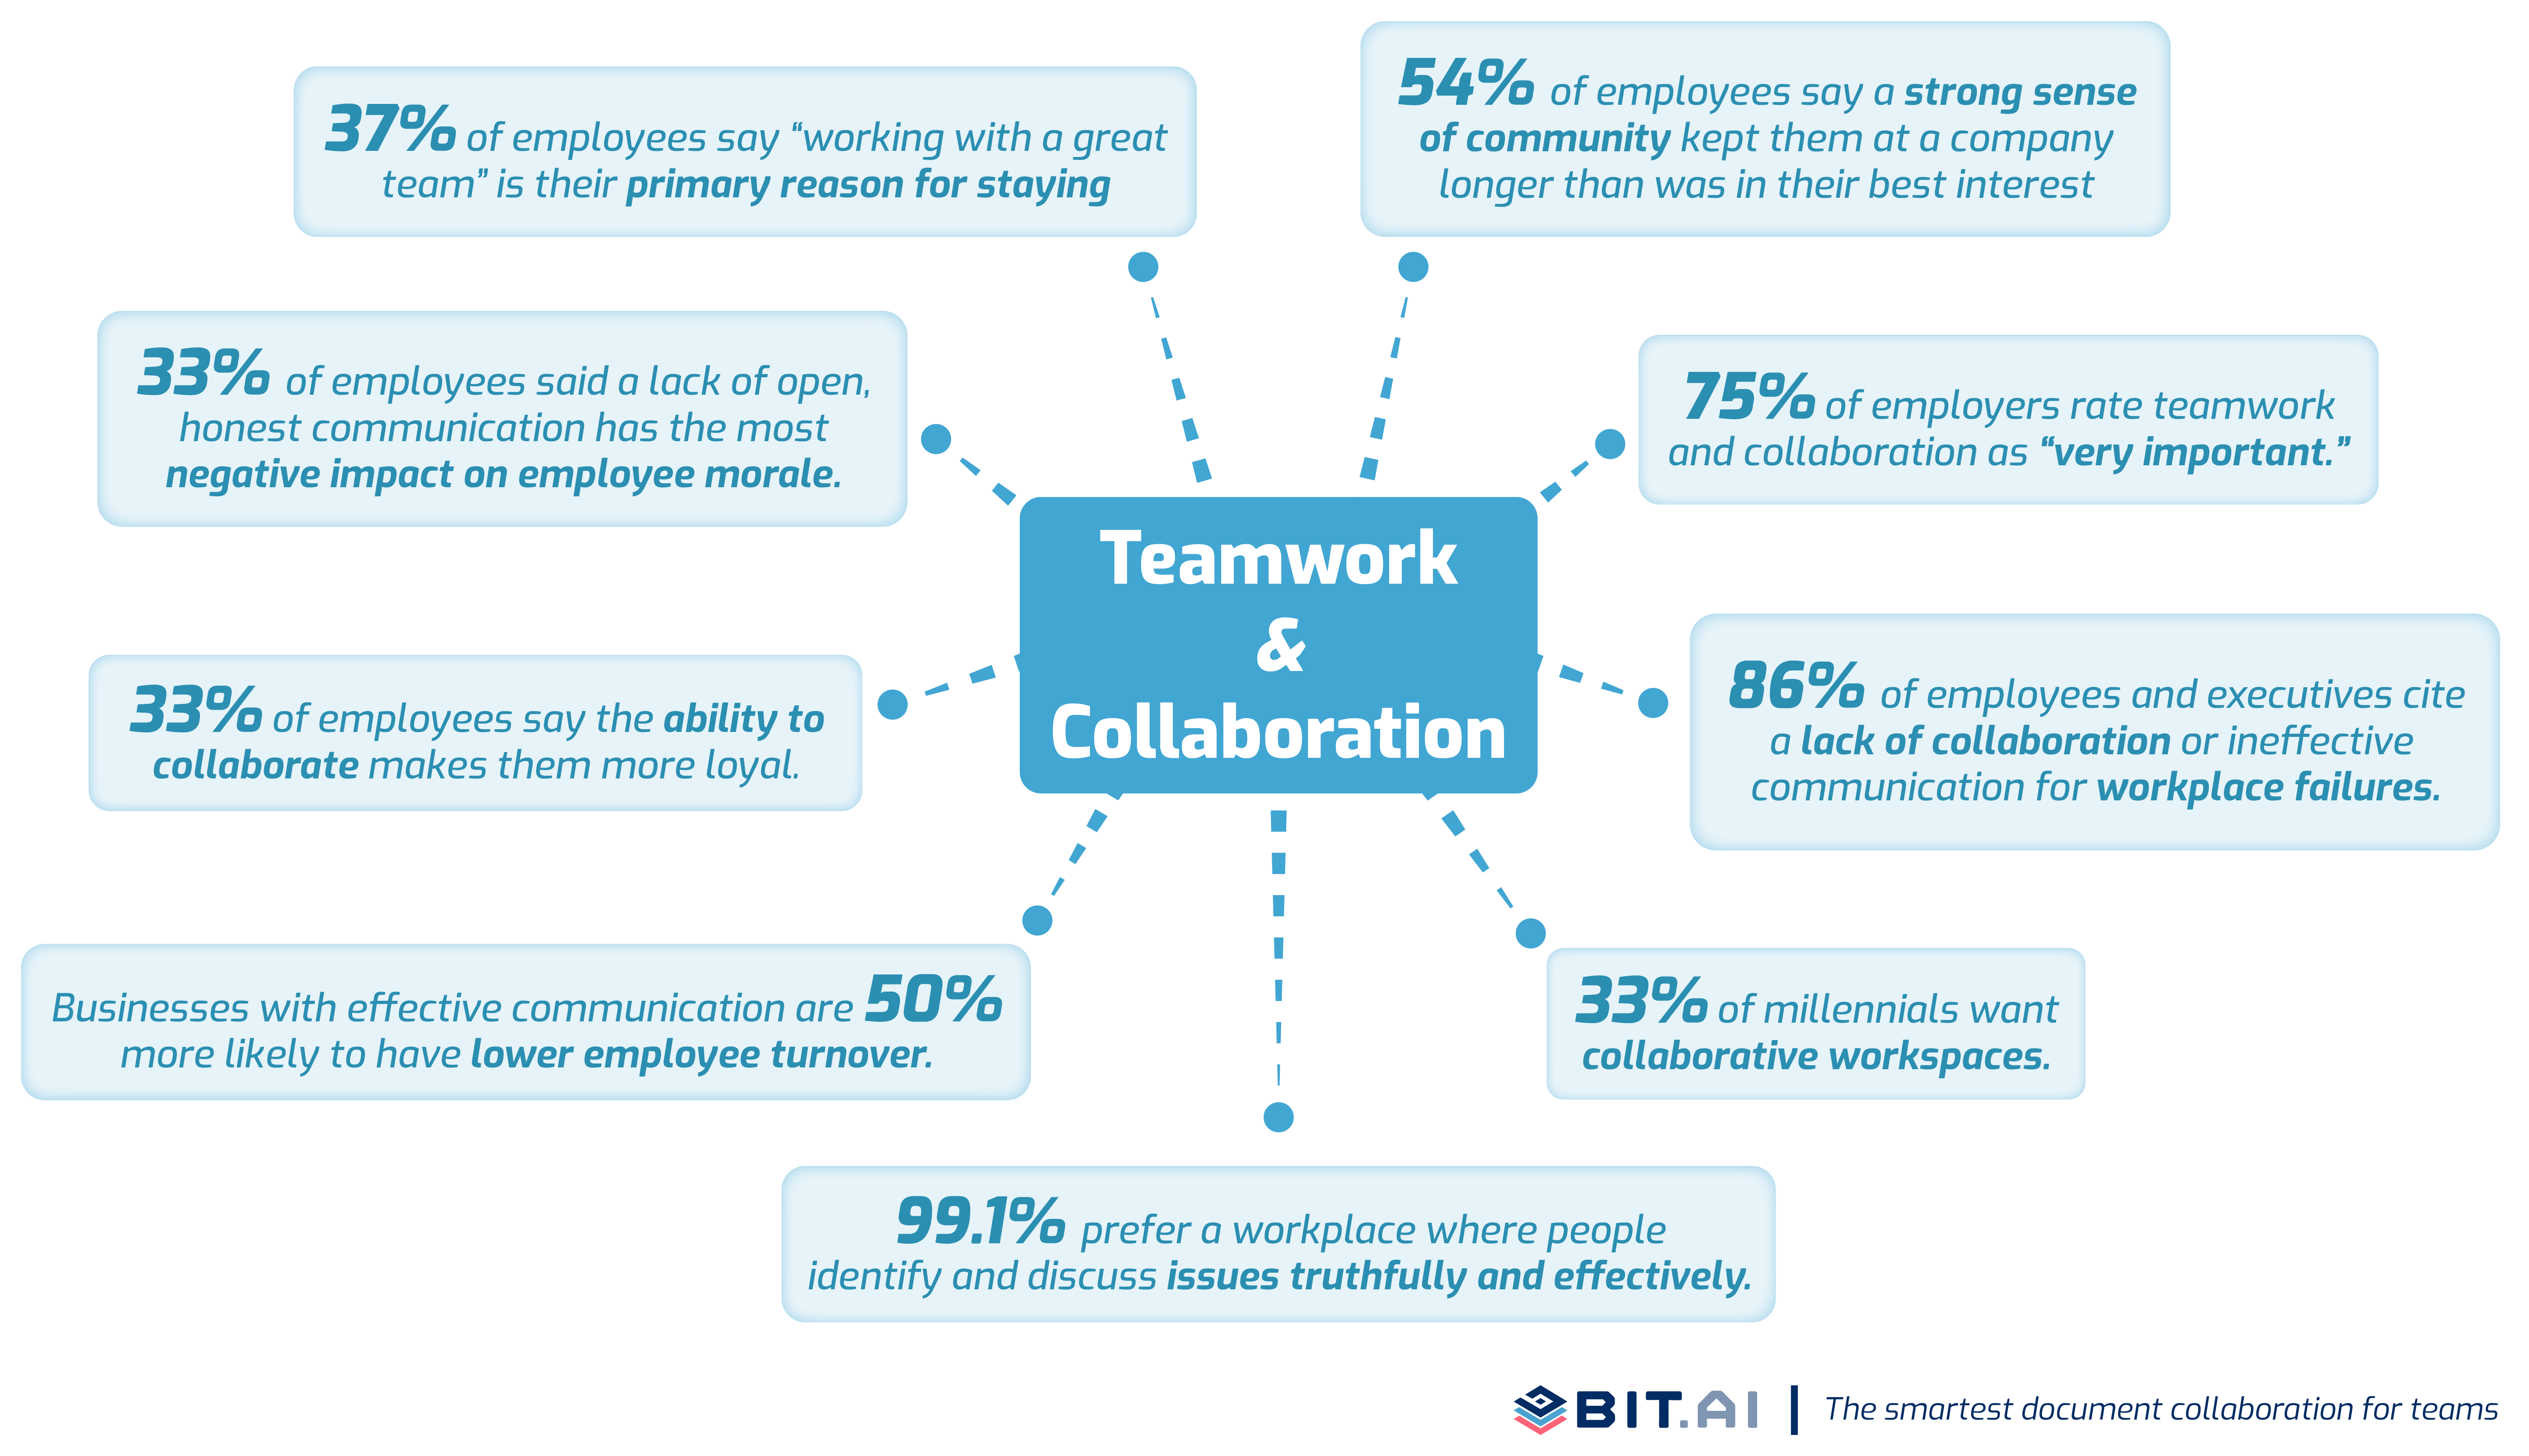 Statistics illustration related to teamwork and collaboration